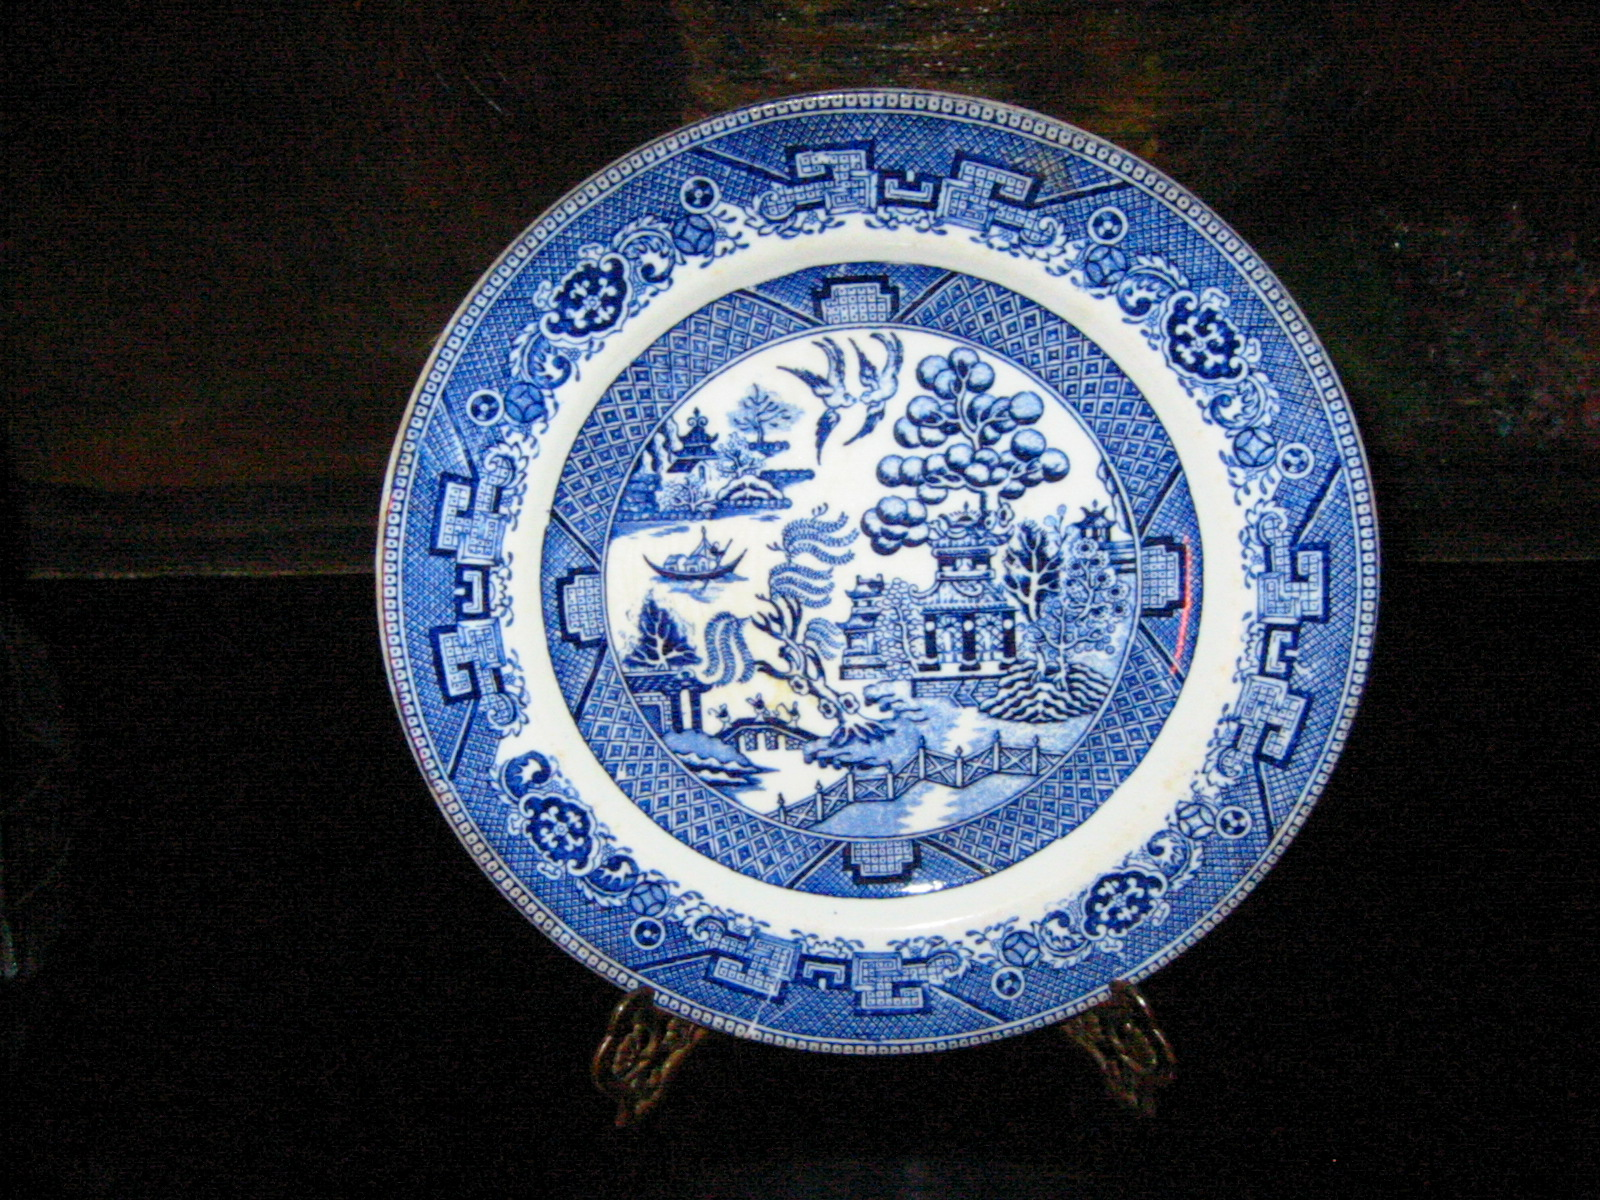 Willow Royal Doulton blue u0026 white figurative plate impressed st& marks. excellent 7.5  d. Antique Porcelain u0026 Pottery & Willow Royal Doulton Porcelain Plate Figurative Blue White For Sale ...